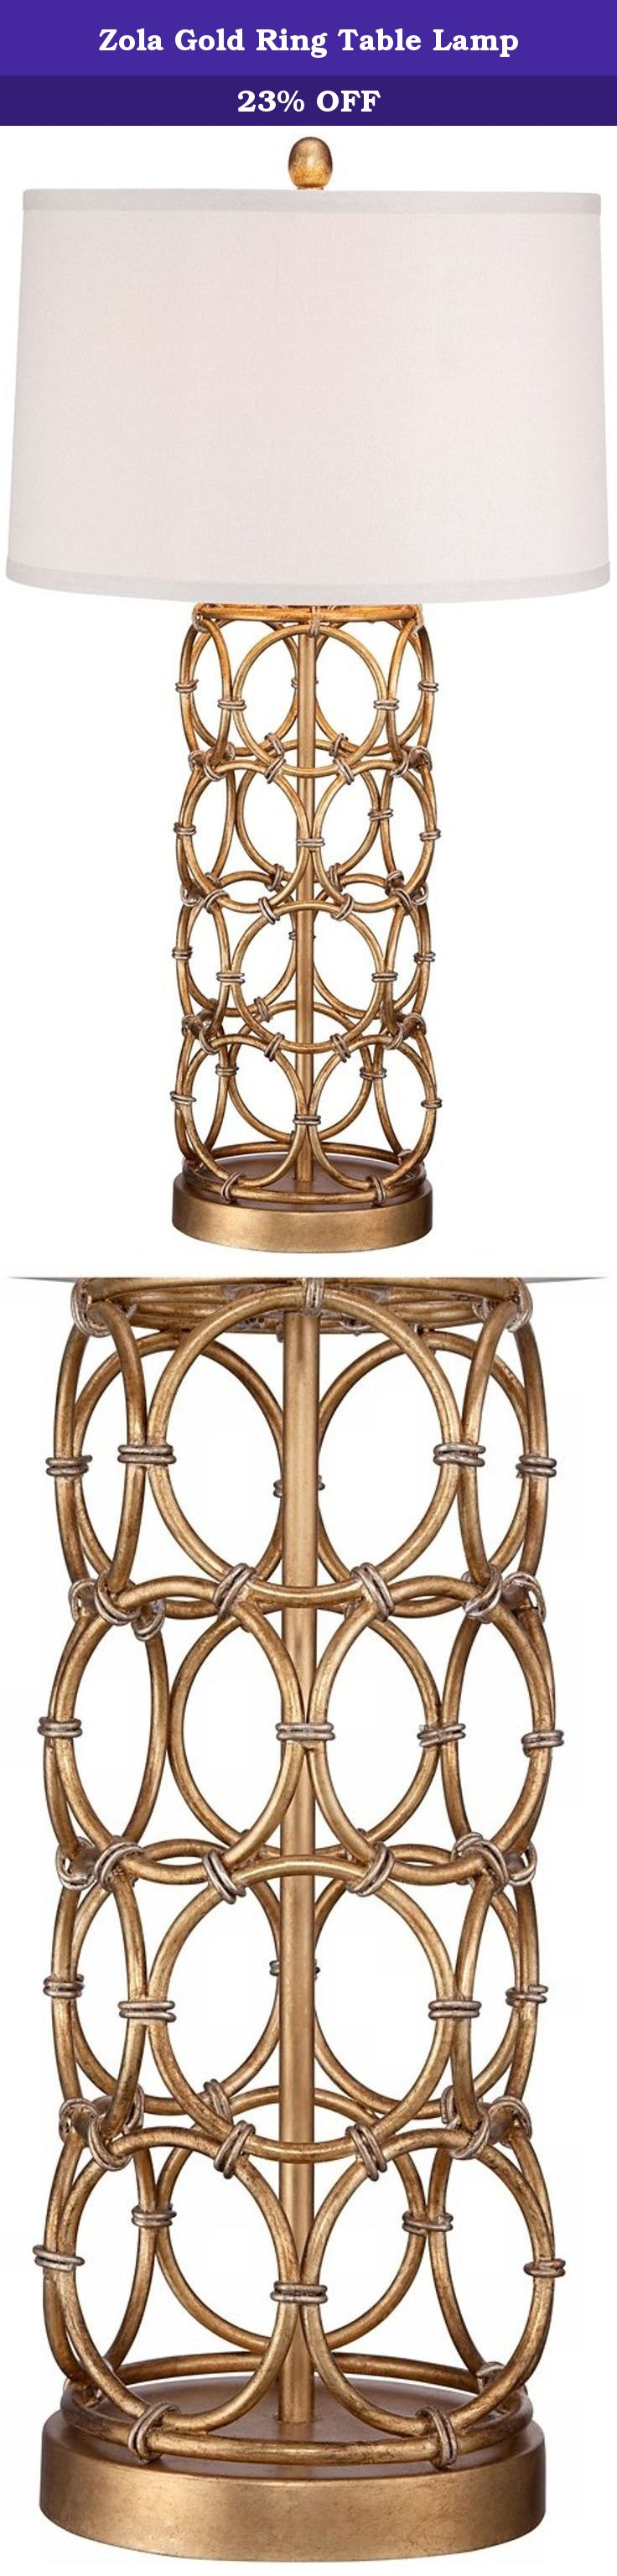 Zola Gold Ring Table Lamp Chic and Bright This Table Lamp Easily